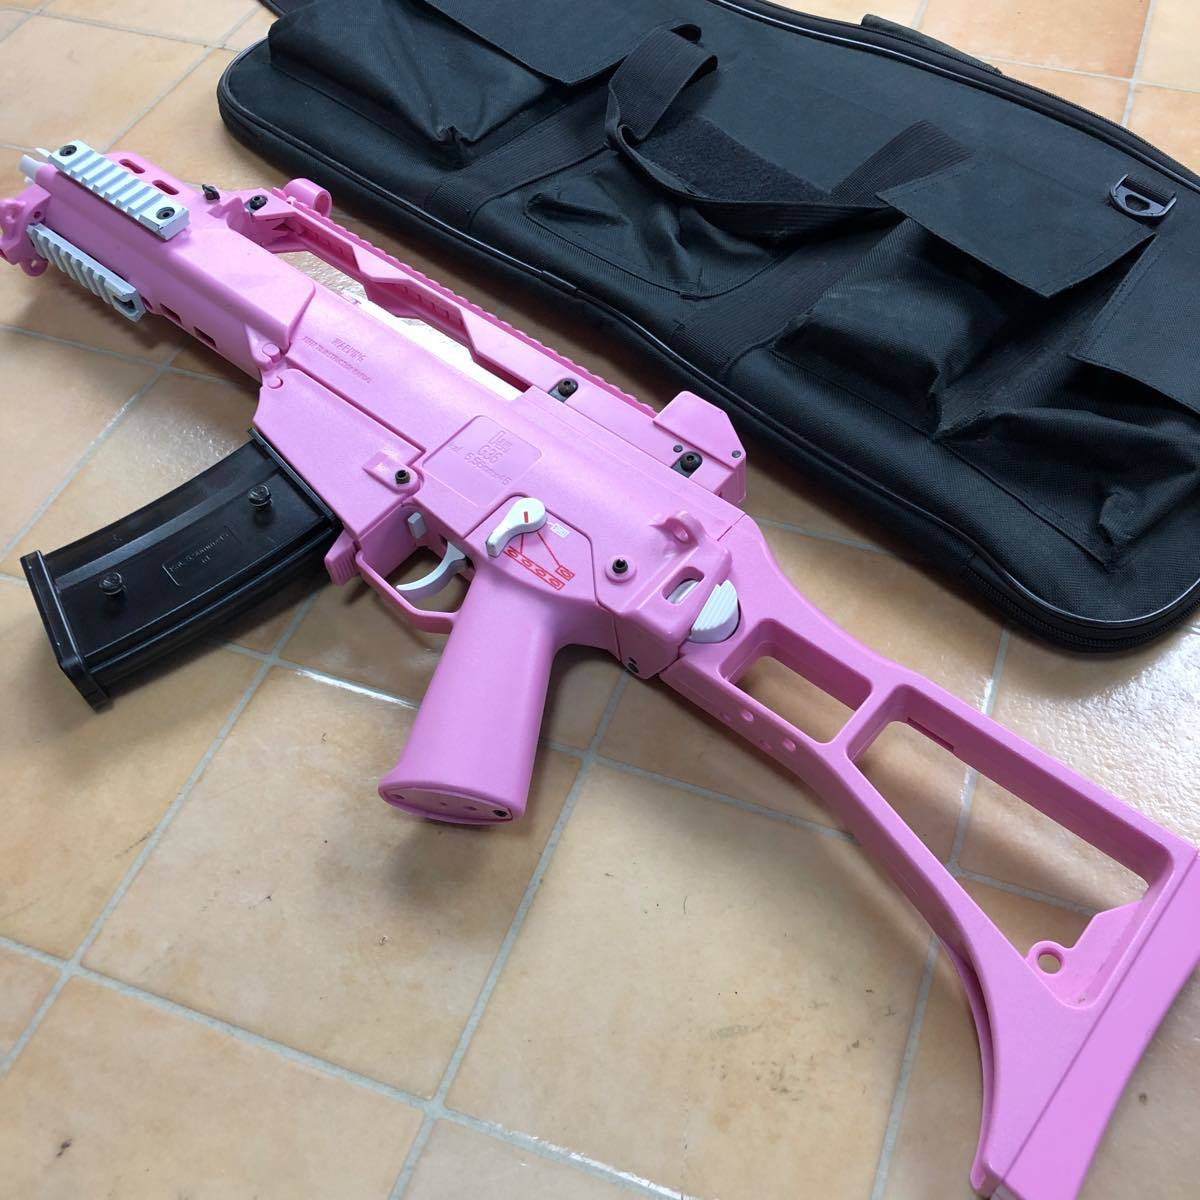 S&T G36C Competition 電動ガン Pink S&TAEG12PN  ピンク #906